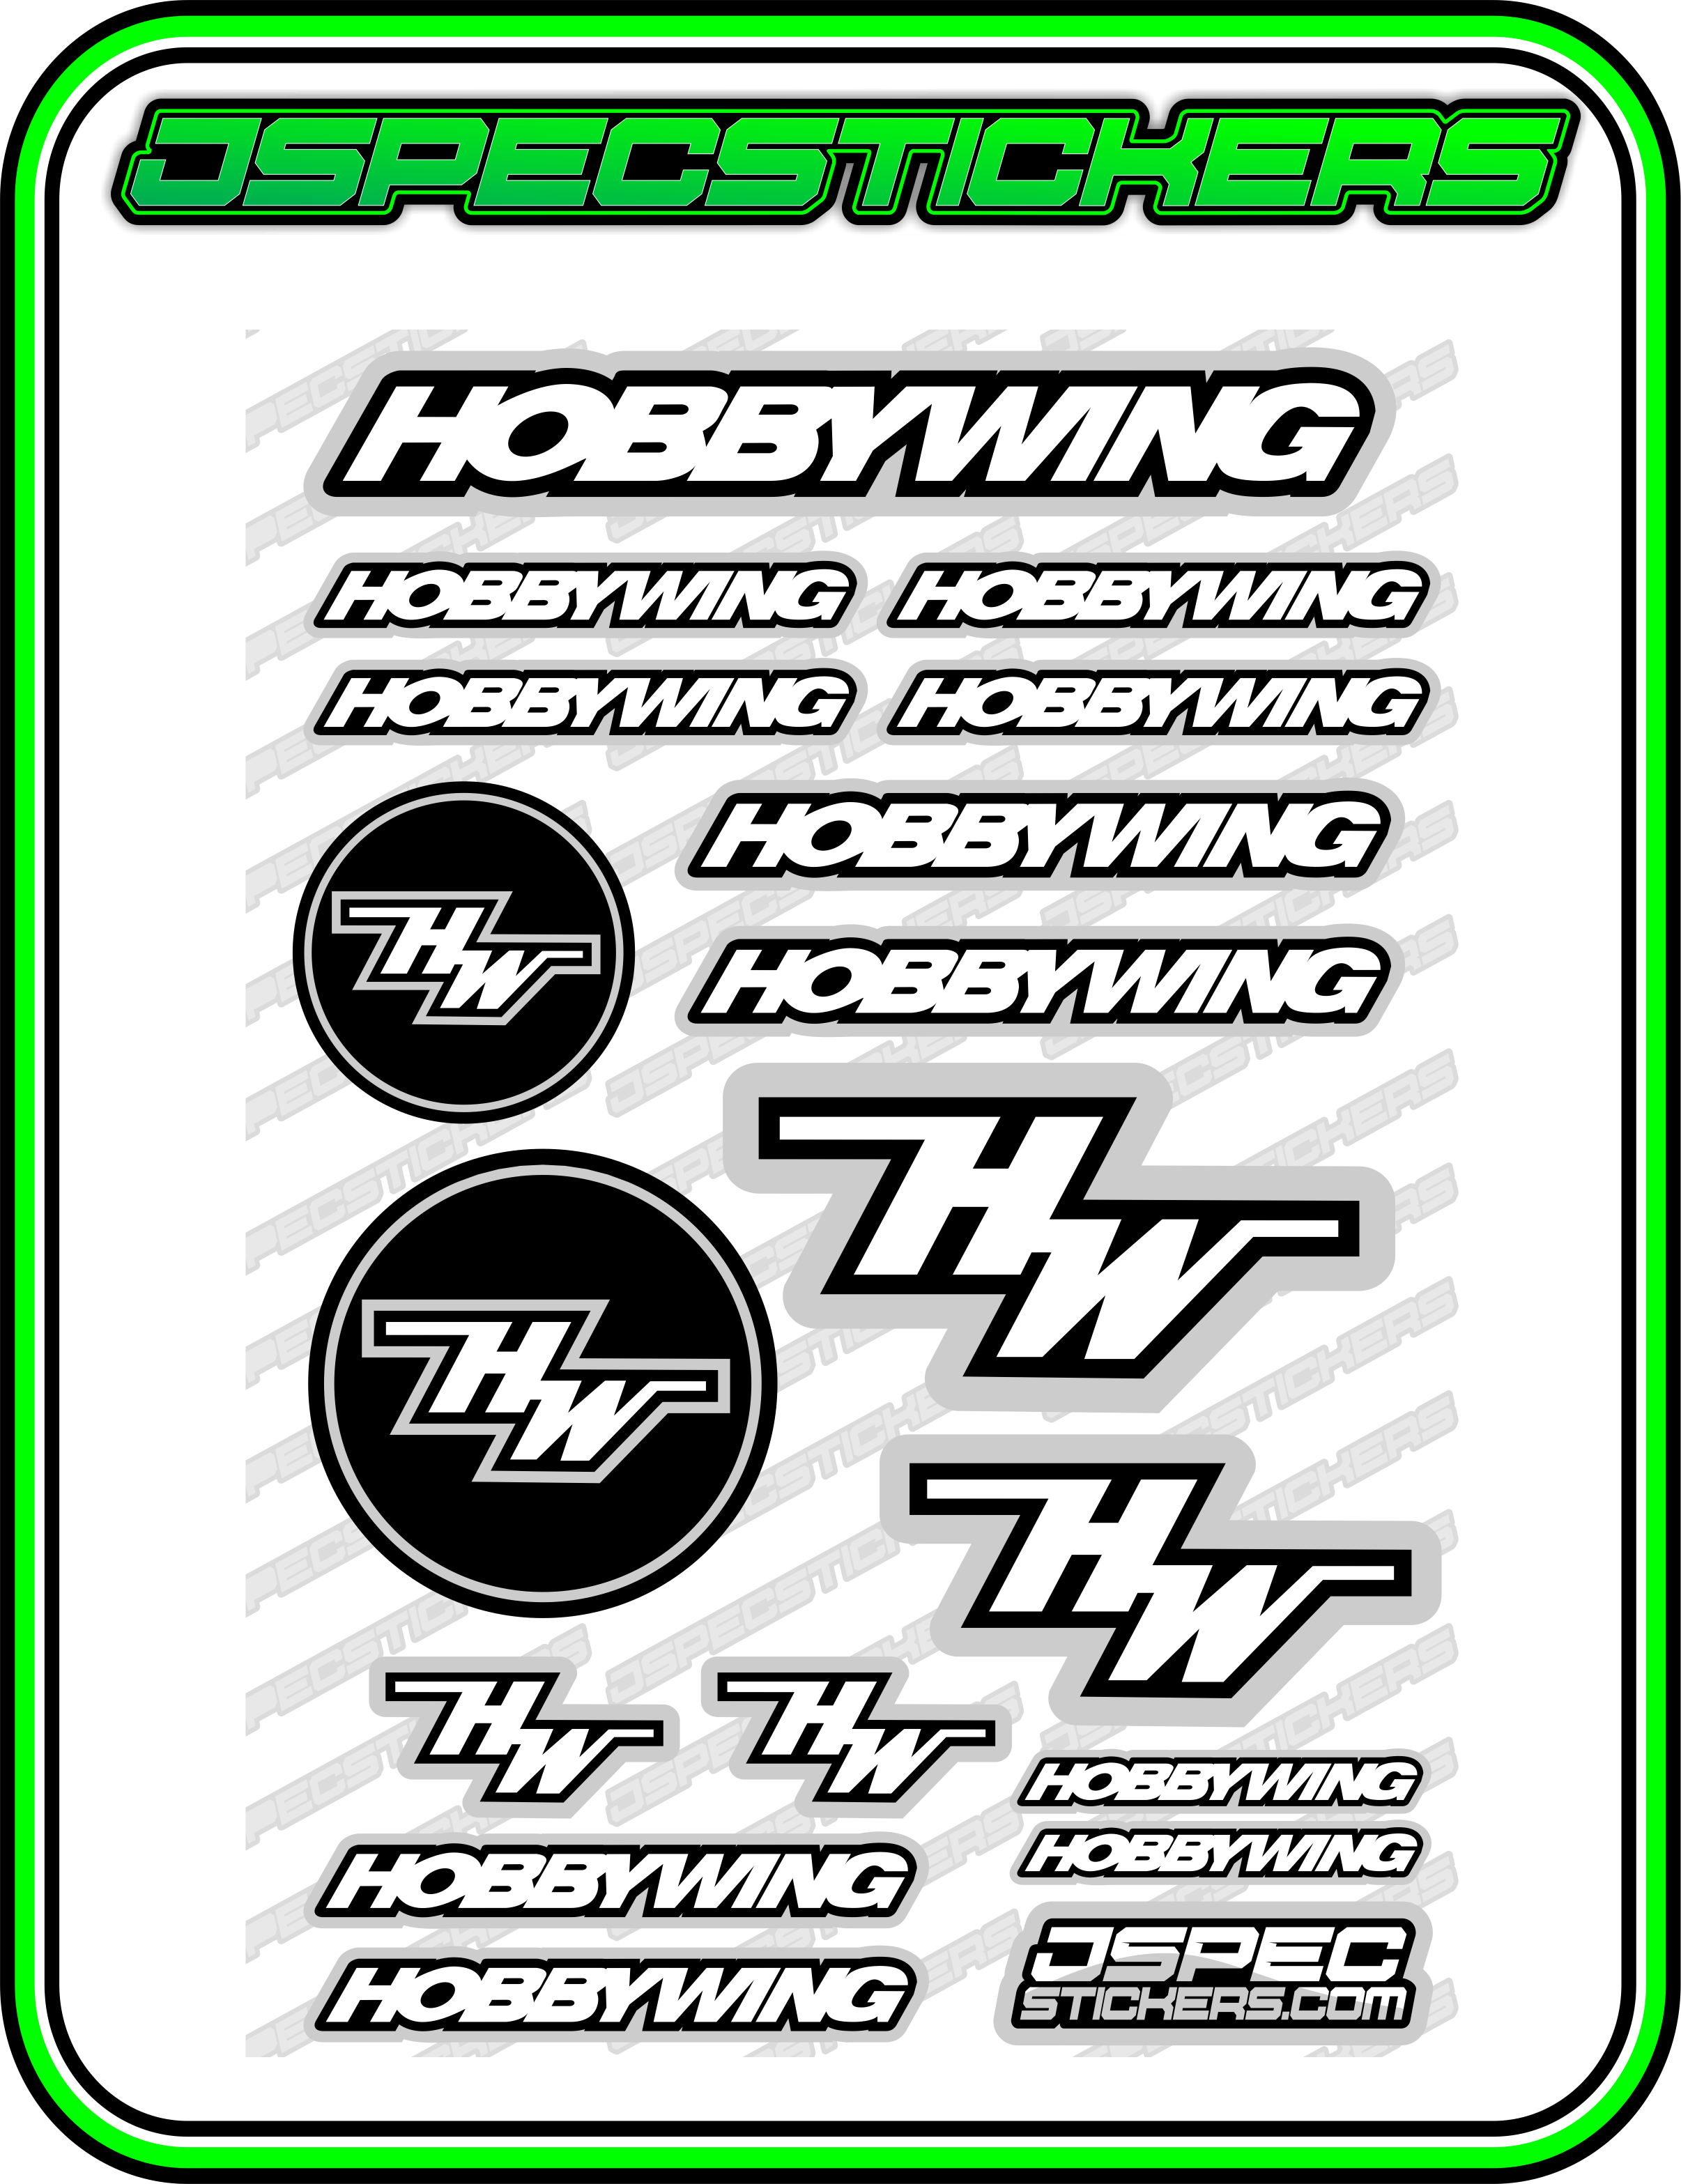 HOBBYWING RC STICKER SHEET A5 'RK EDITION' - Jspec Stickers